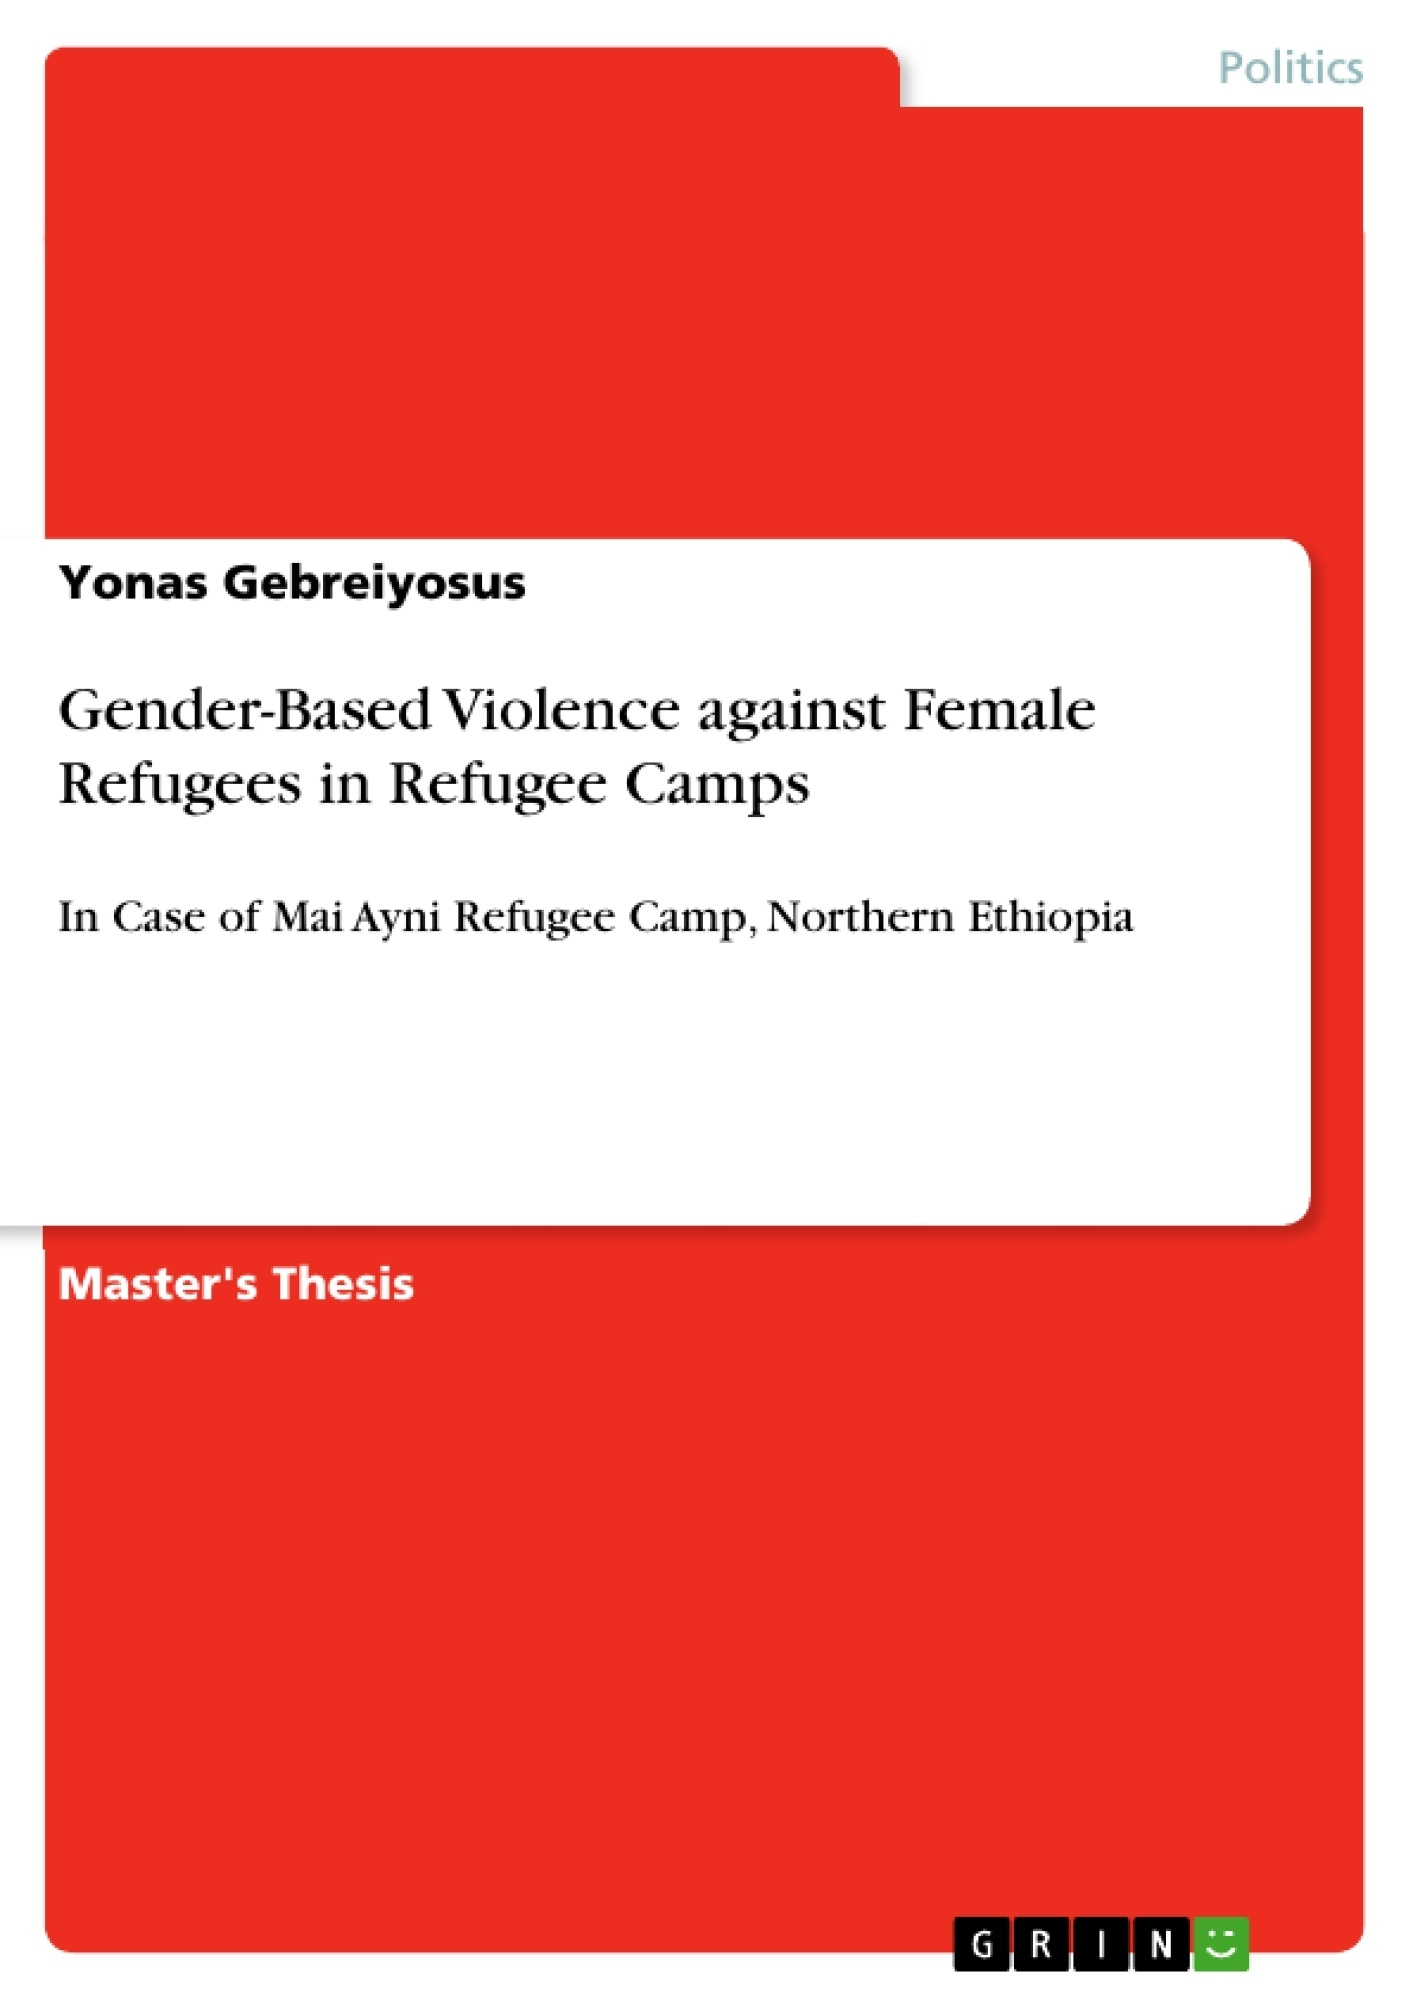 gender based violence against female refugees in refugee camps gender based violence against female refugees in refugee camps publish your master s thesis bachelor s thesis essay or term paper